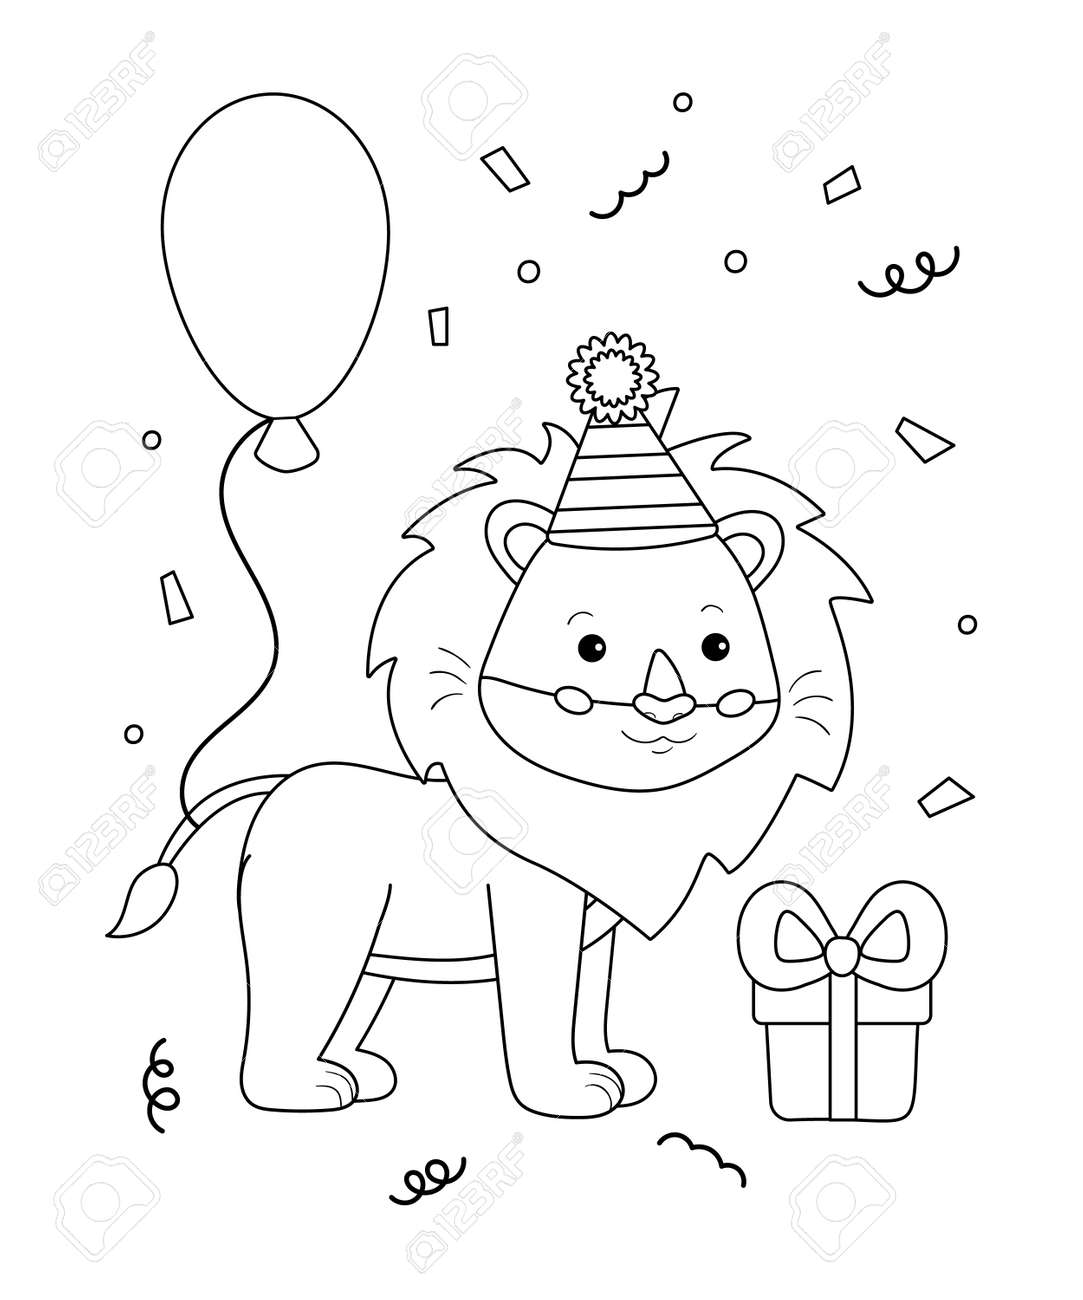 Cute happy birthday coloring page for kids. Funny cartoon lion with balloon and gift. Black and white vector illustration. - 165695080